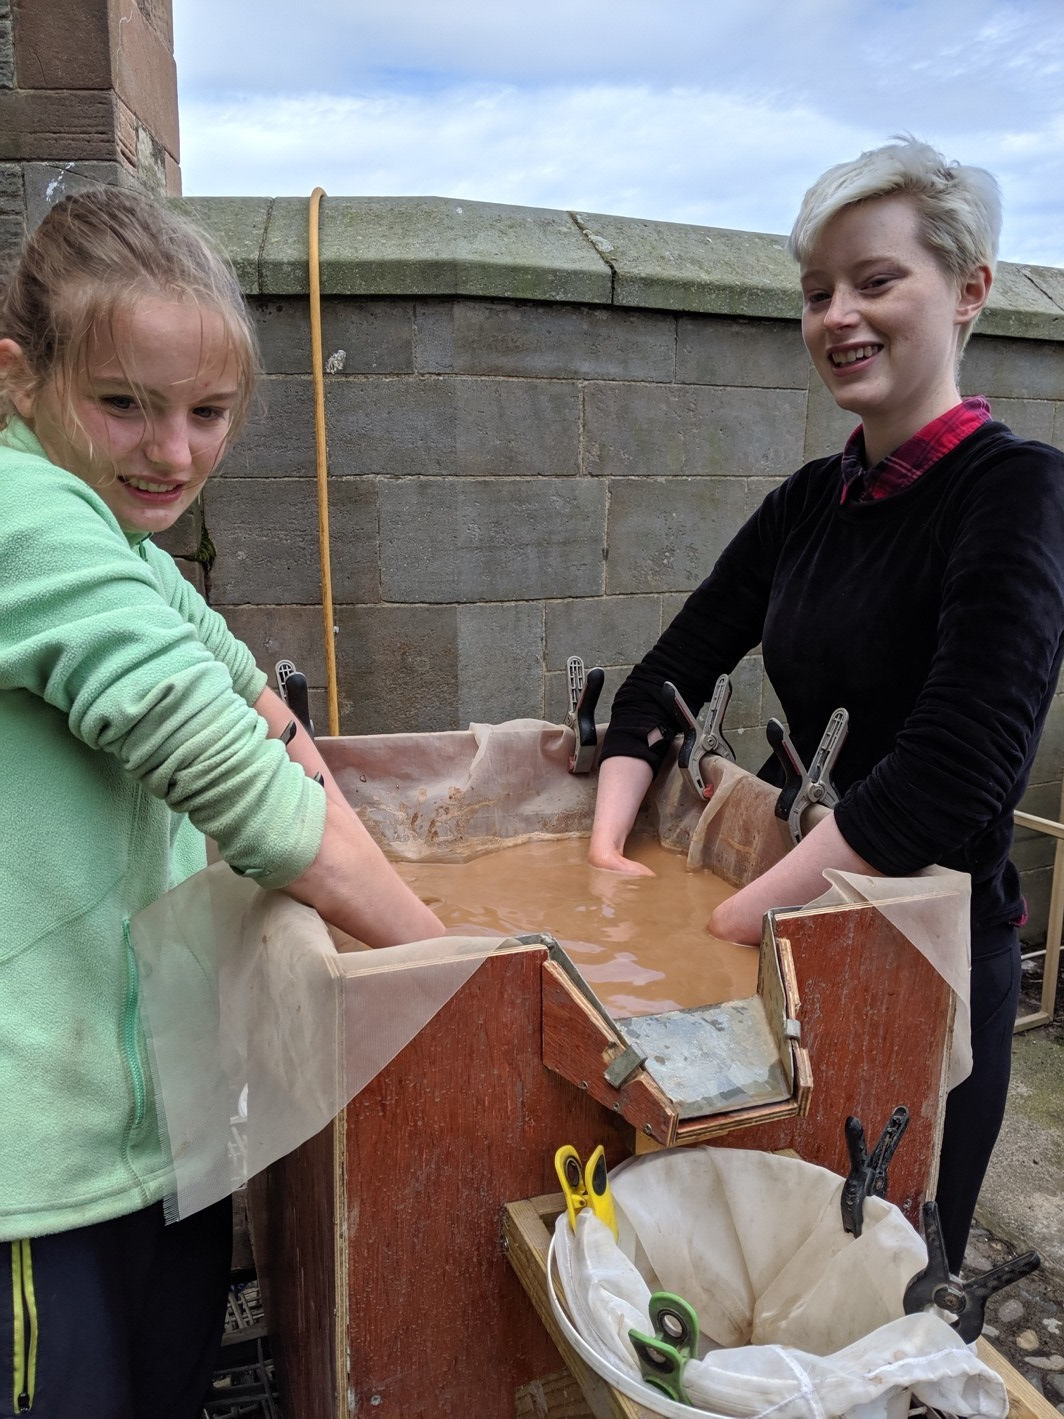 Two students with their hands in the flot tank.